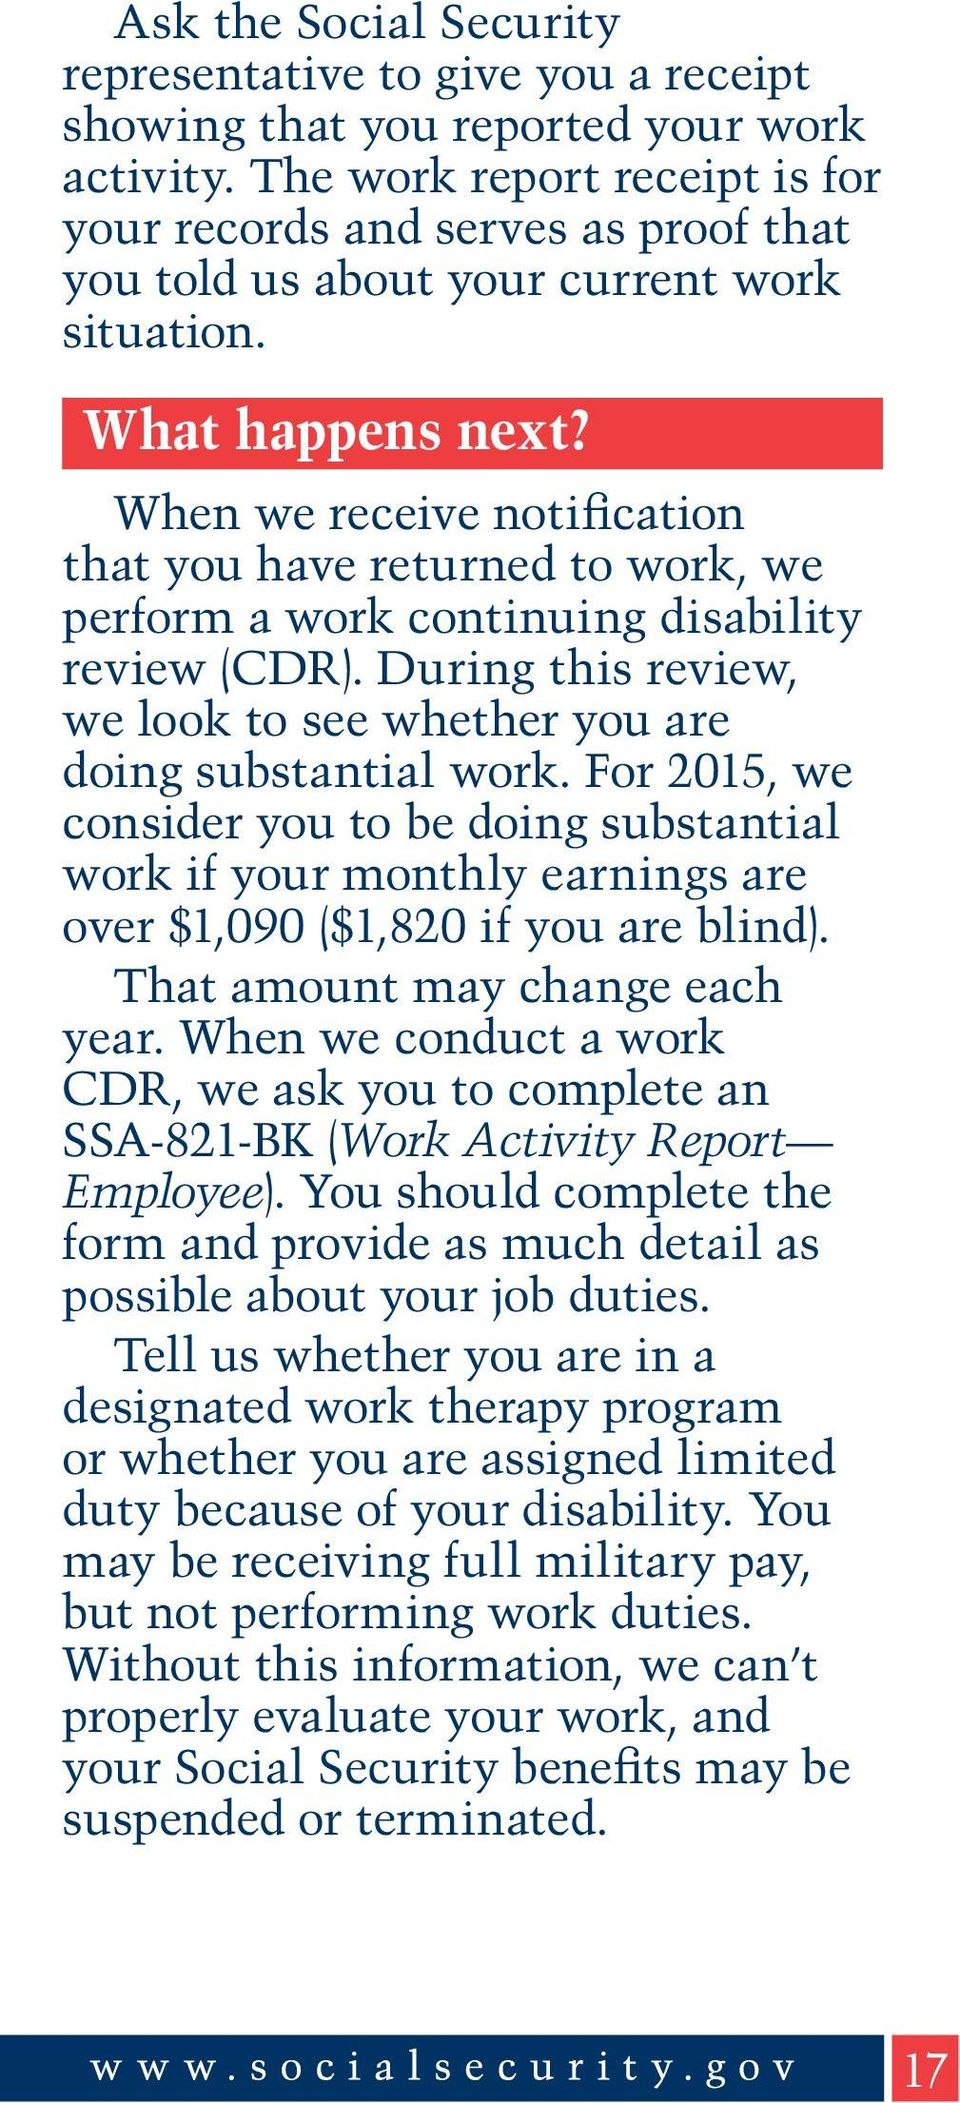 When we receive notification that you have returned to work, we perform a work continuing disability review (CDR). During this review, we look to see whether you are doing substantial work.